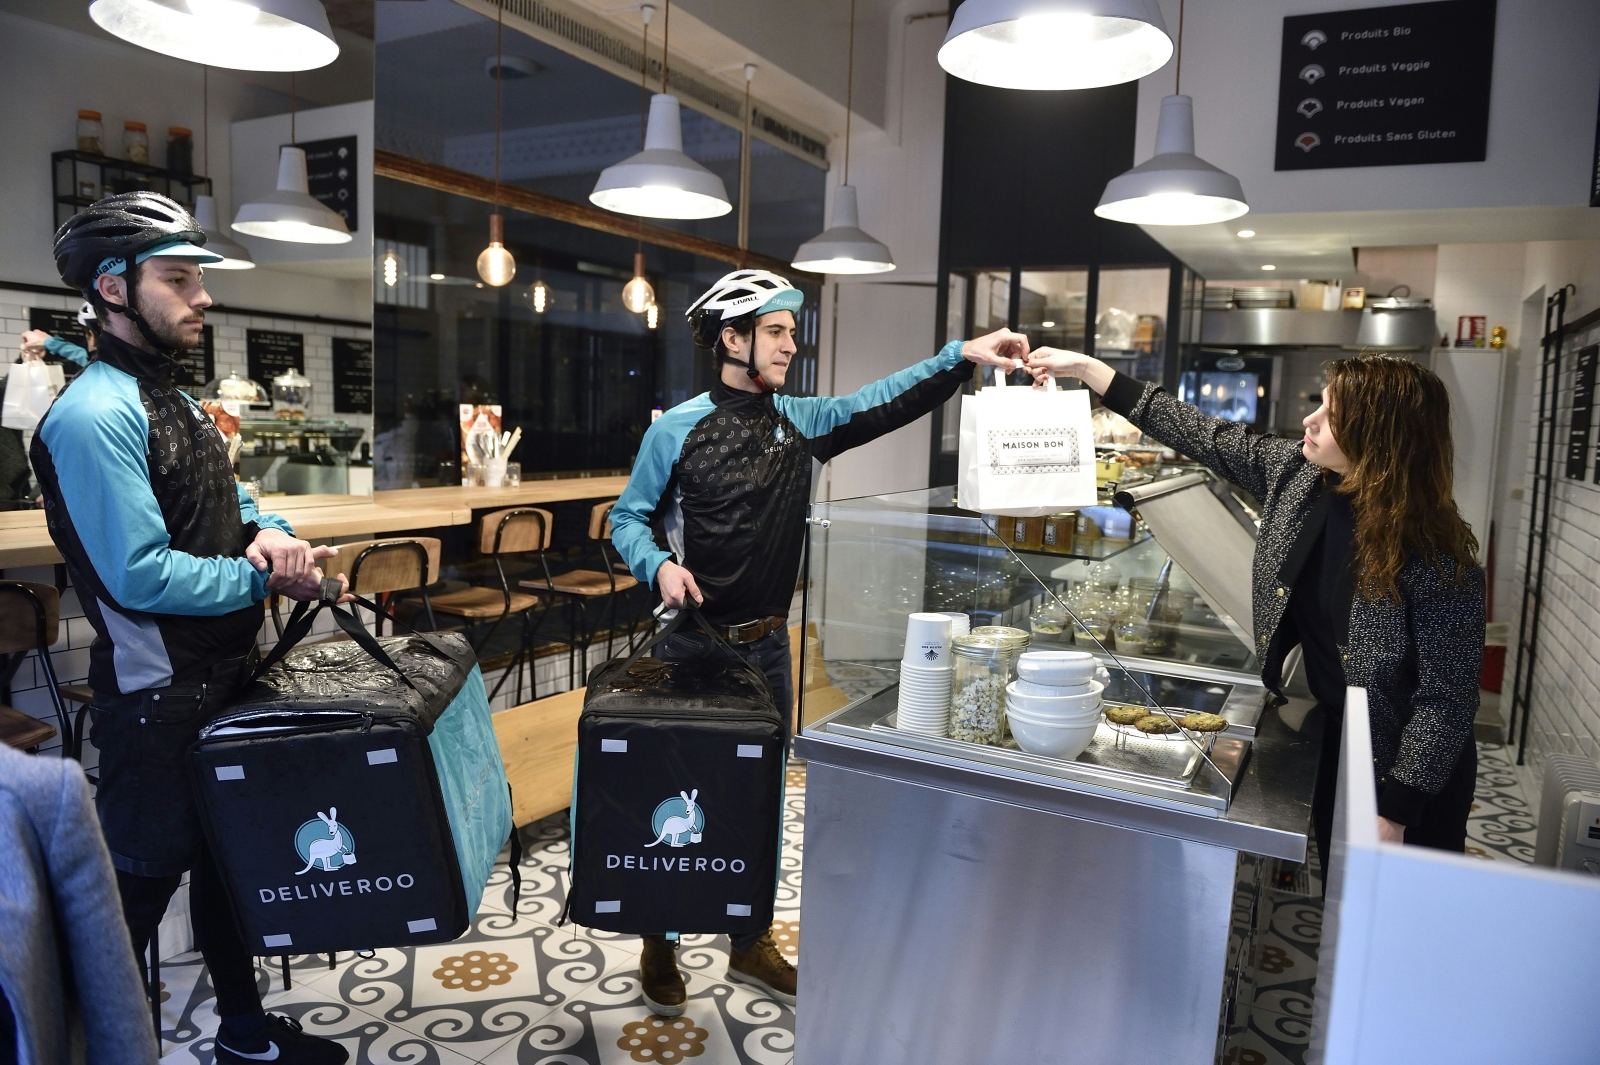 Deliveroo Strike Workers Are Fighting Back Against Low